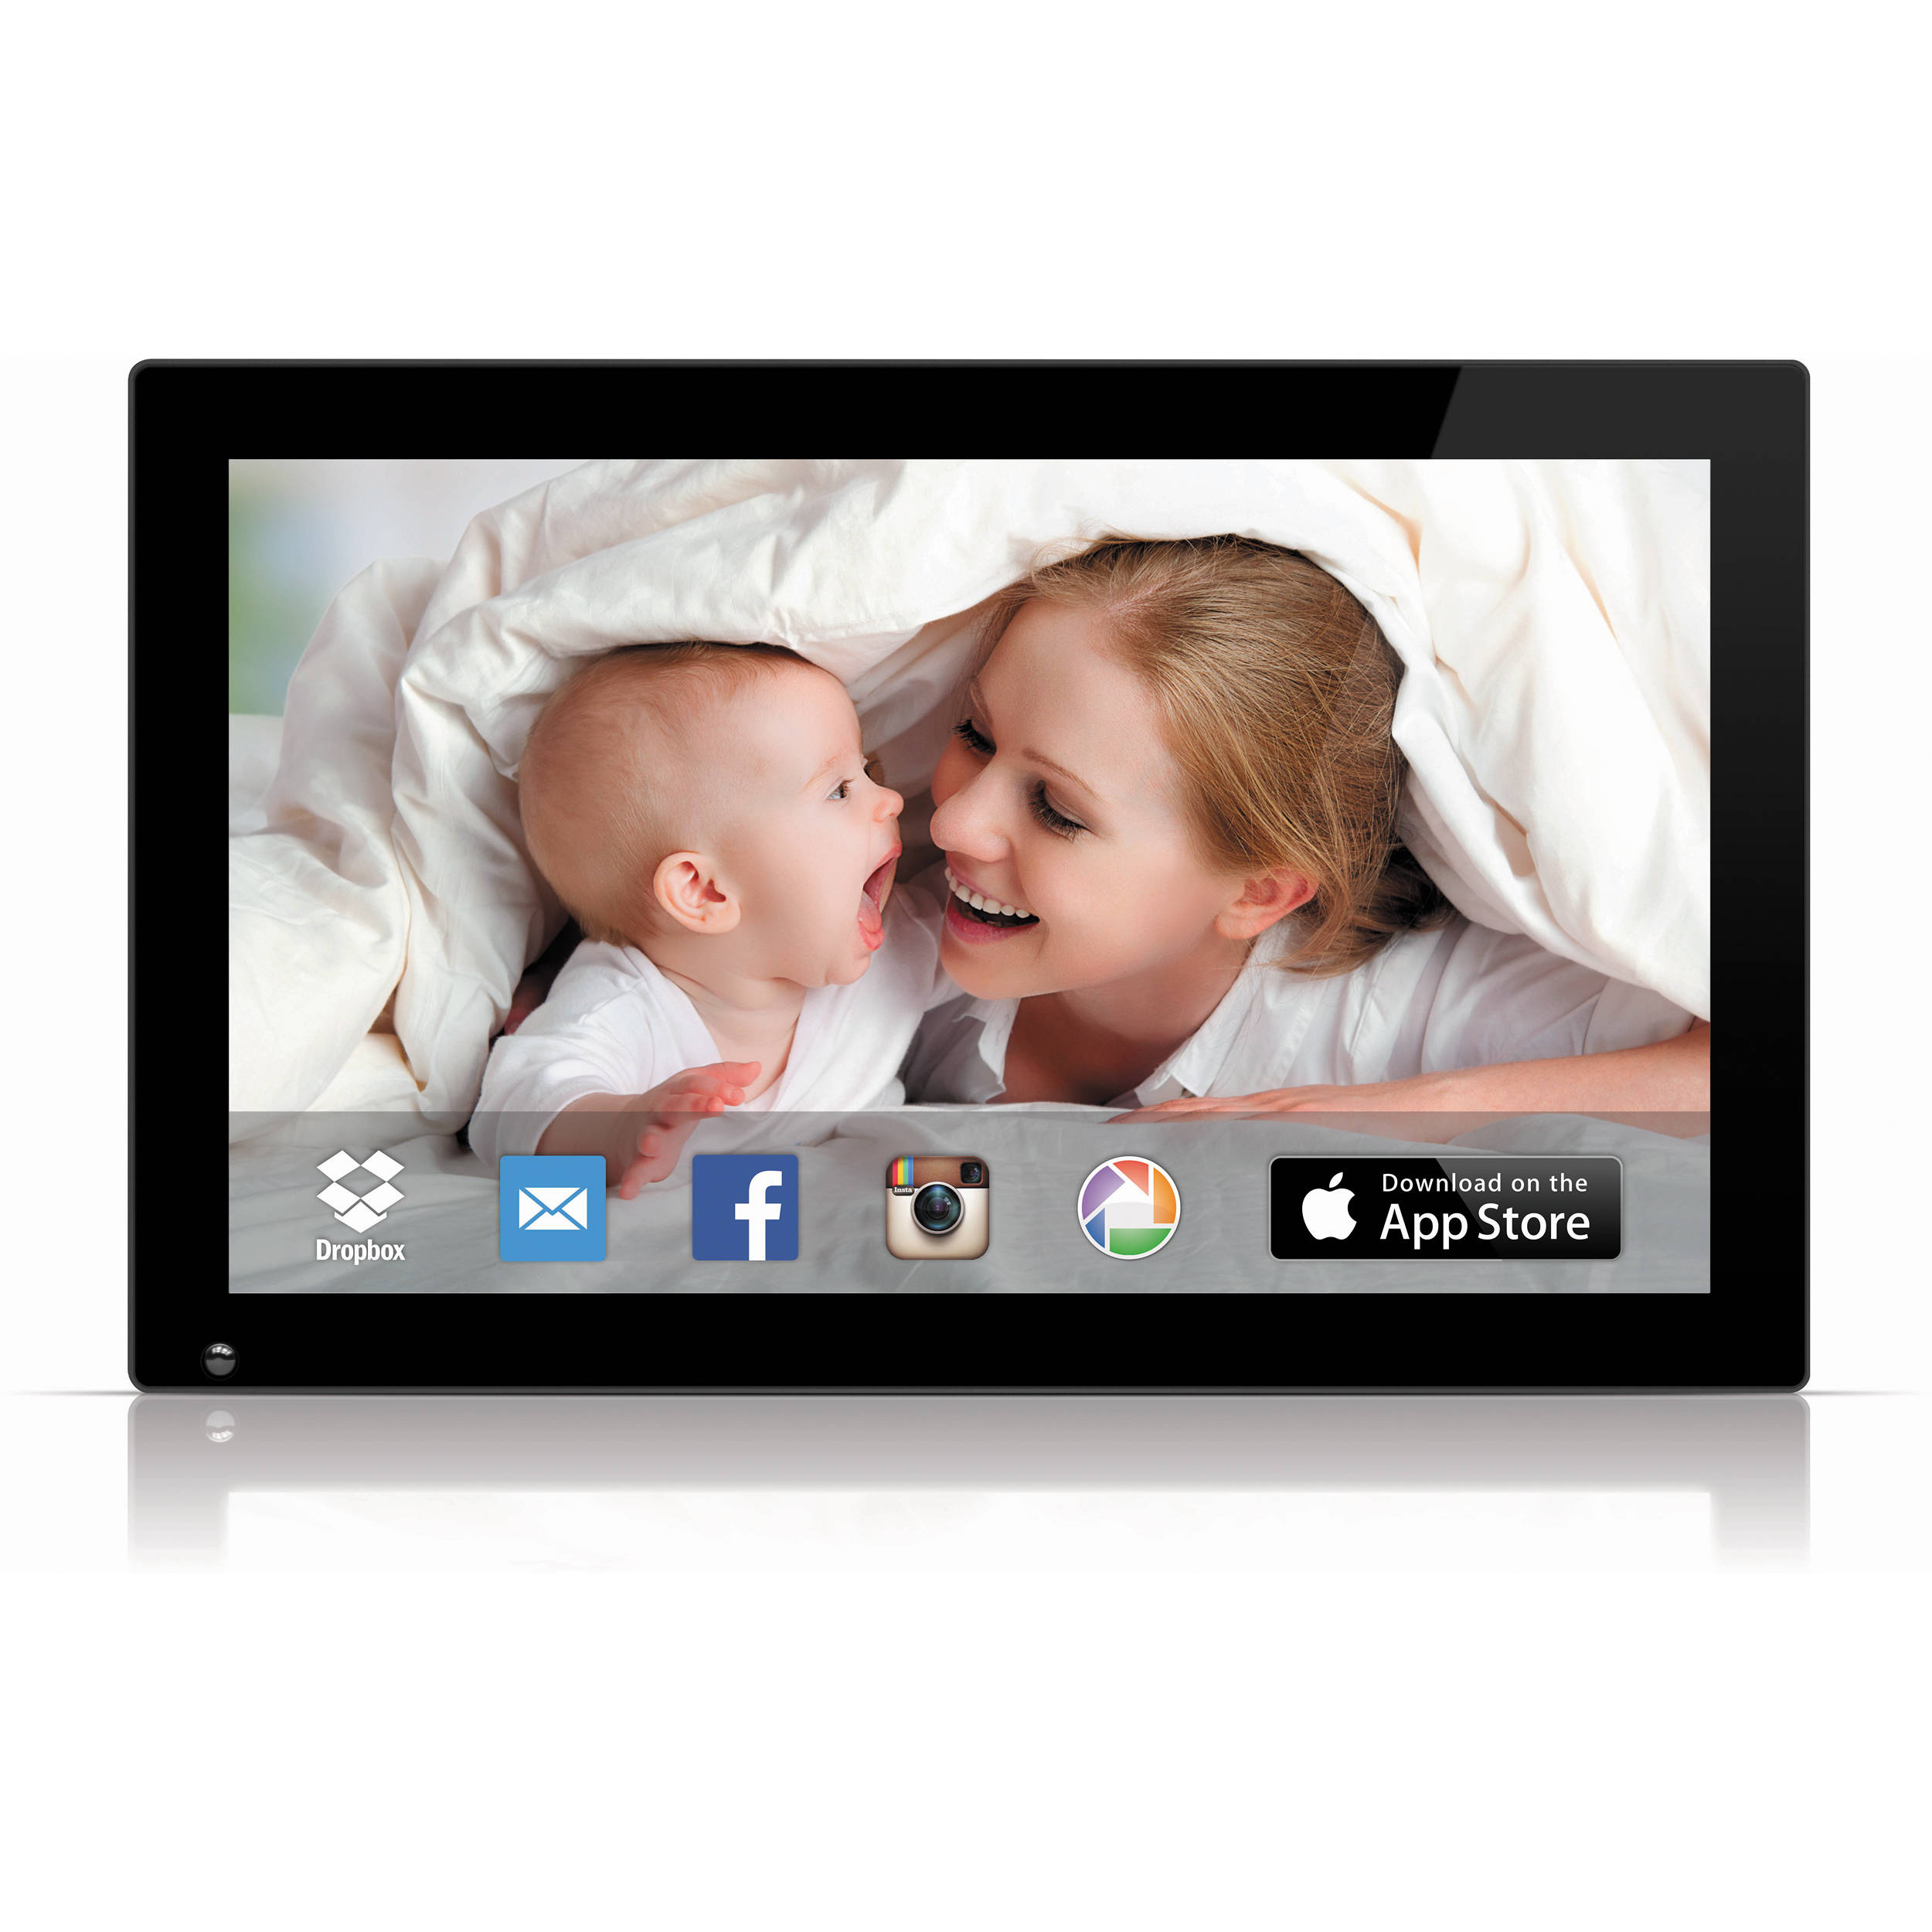 Nixplay nixplay pro cloud wifi digital picture frame w18b bh nixplay nixplay pro cloud wifi digital picture frame 18 jeuxipadfo Gallery